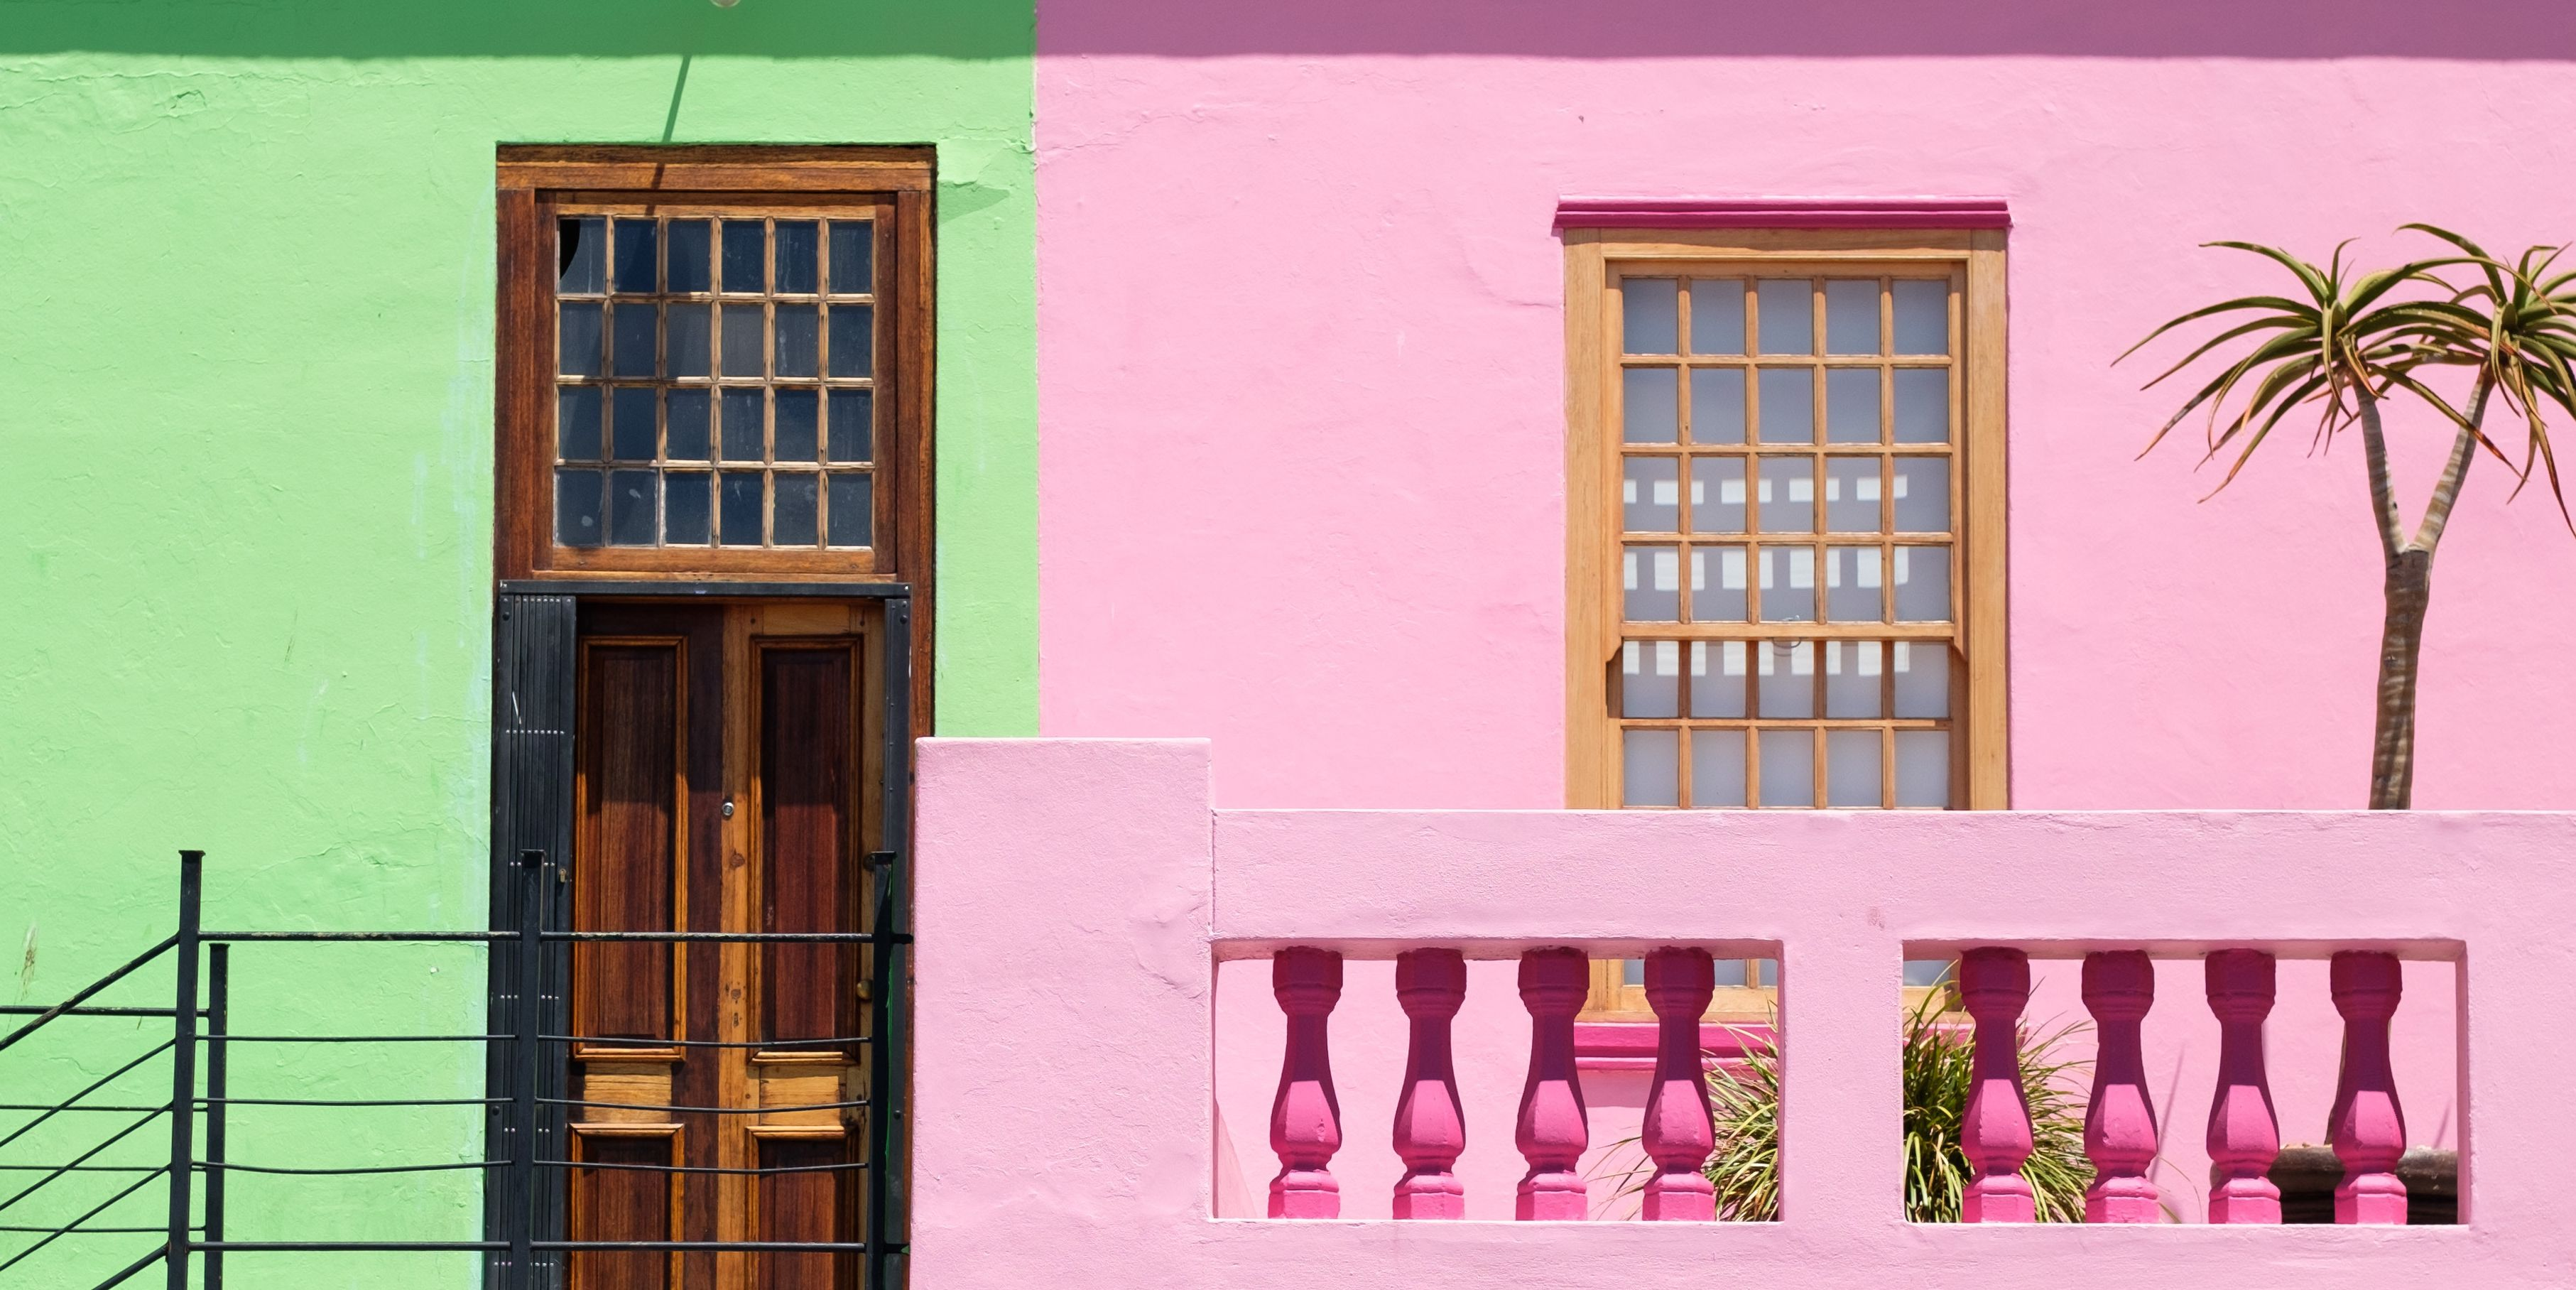 18 of the most colourful destinations in the world